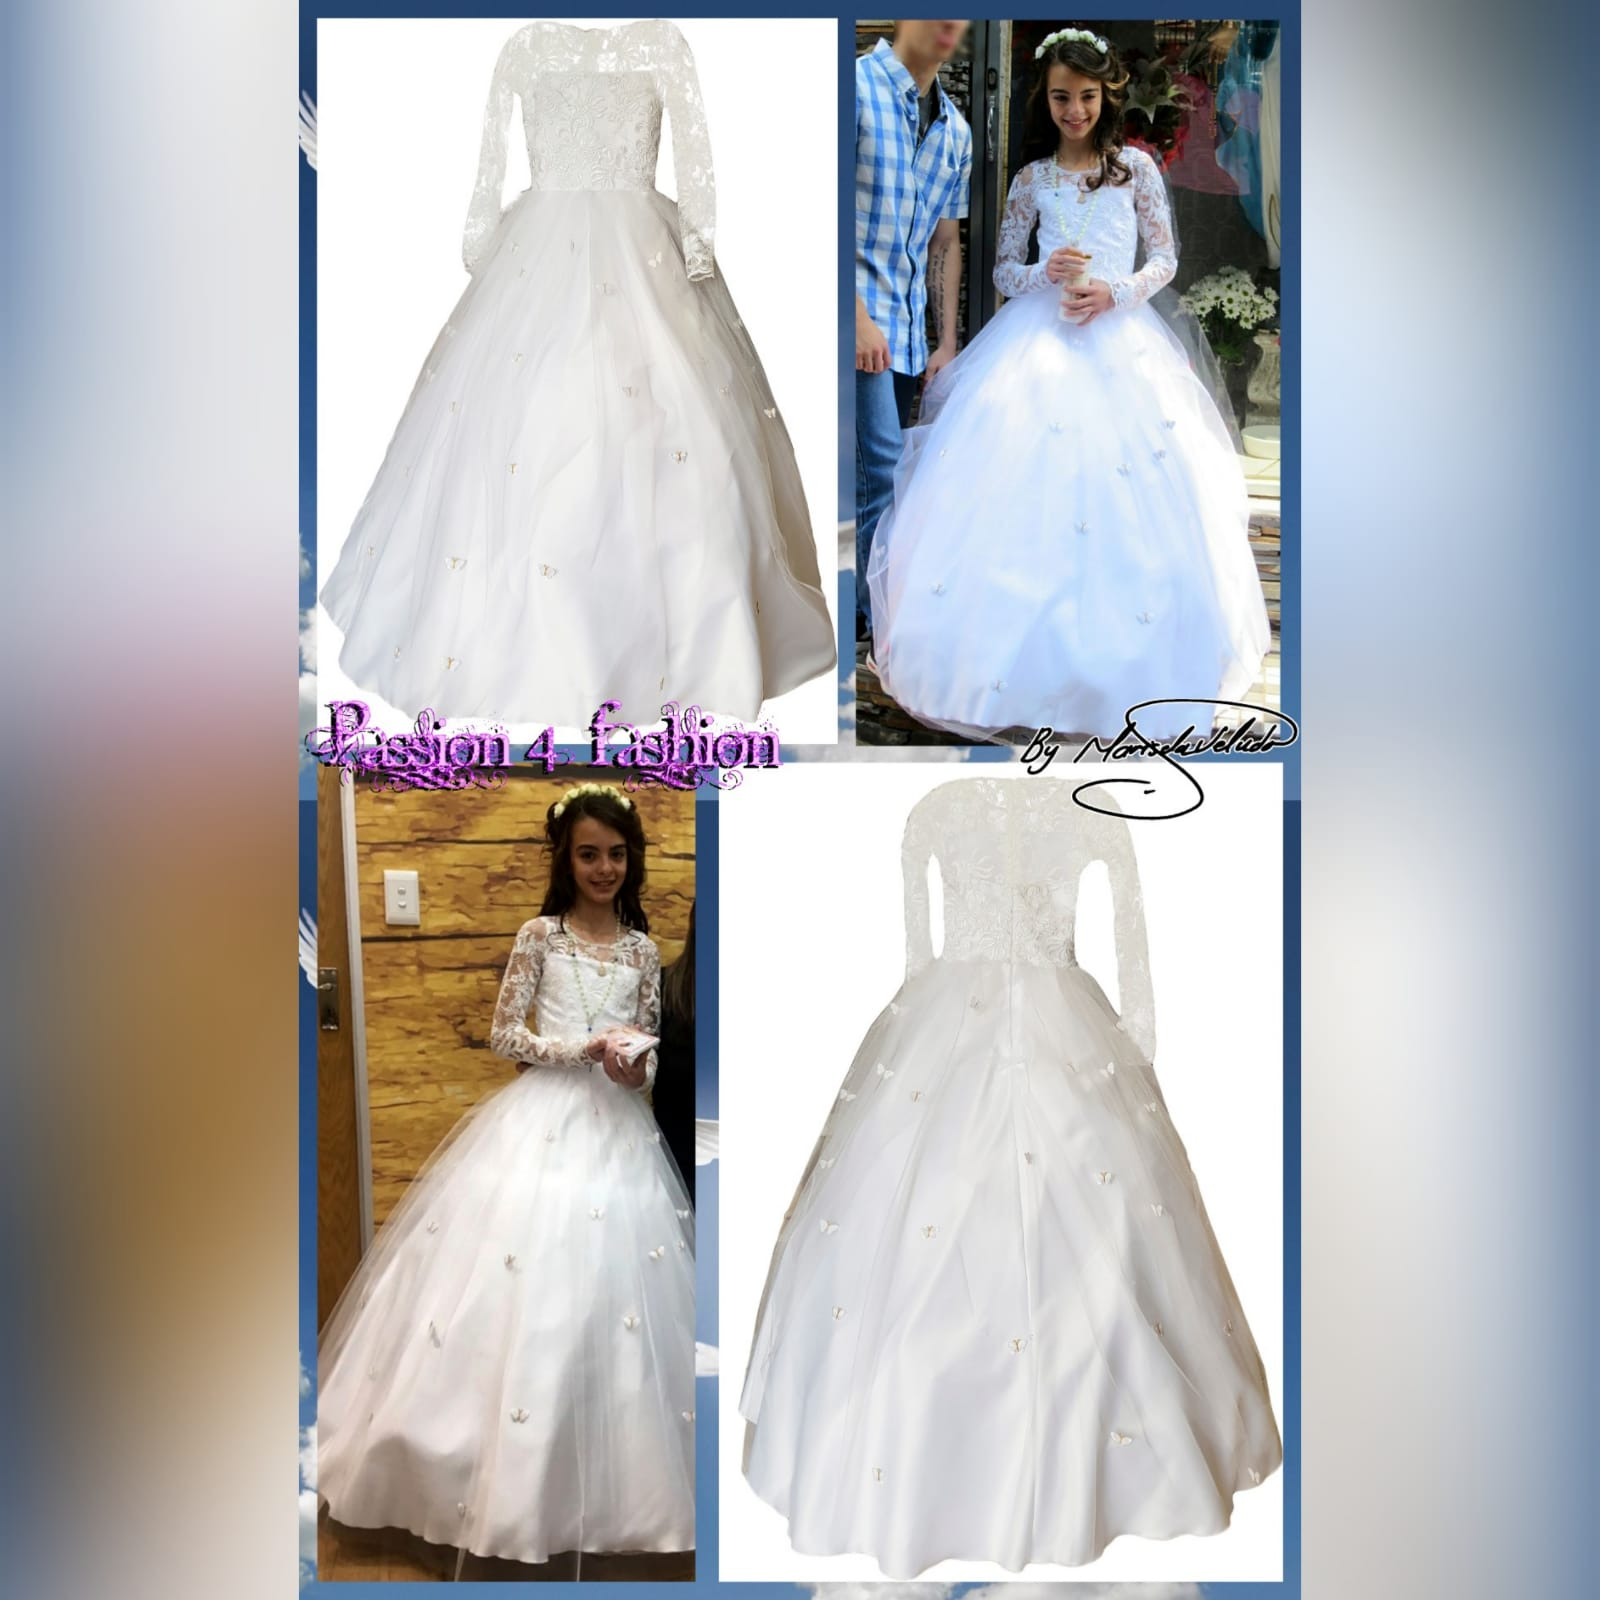 White holy communion ball gown dress 8 white holy communion ball gown dress. With a lace bodice. Long lace sleeves. Holy communion dress detailed with butterflies.